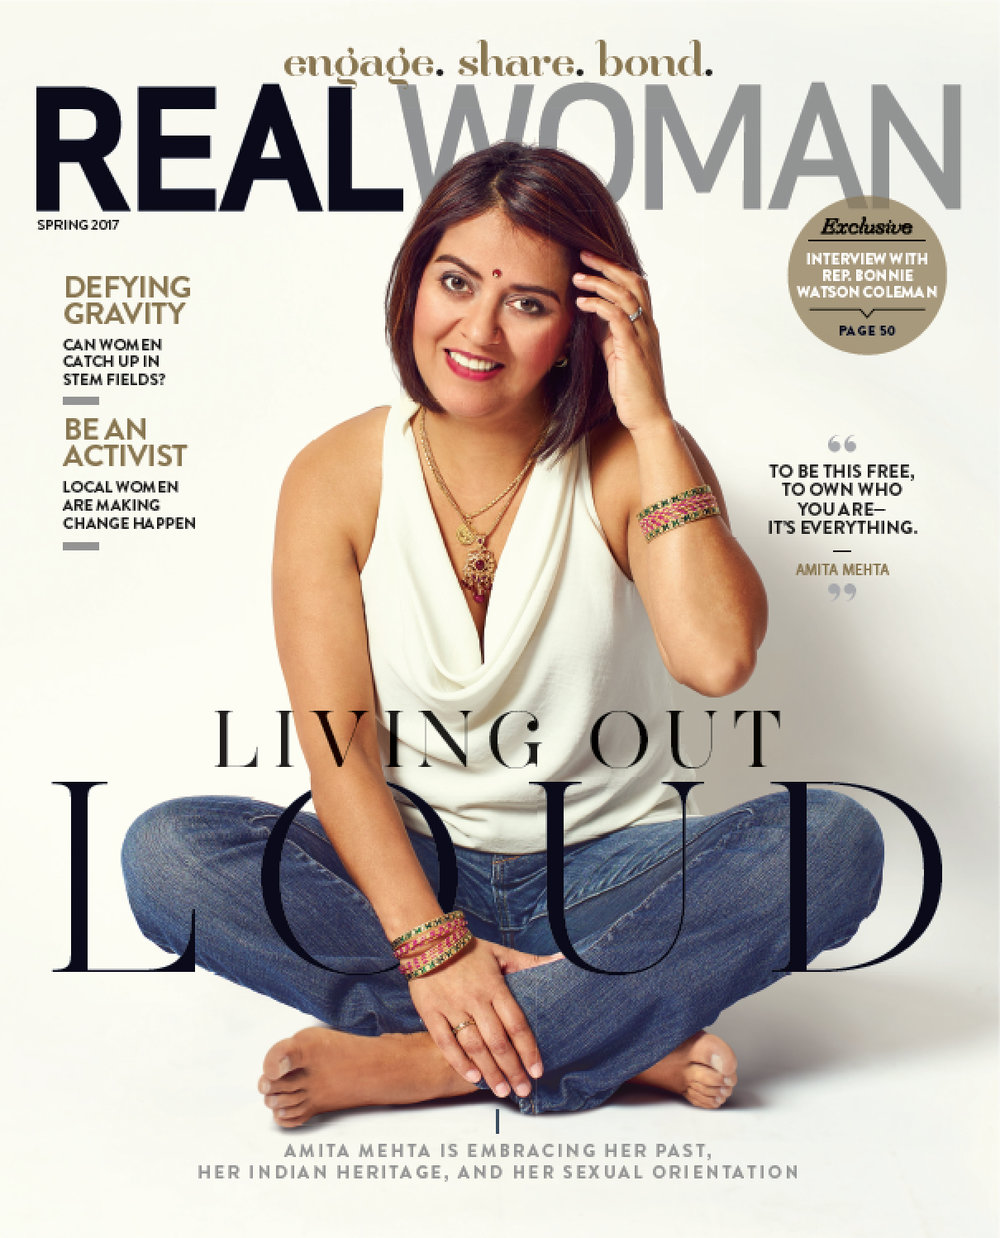 Real Woman: - Amita Mehta is Living Her Truth, and Loving It.